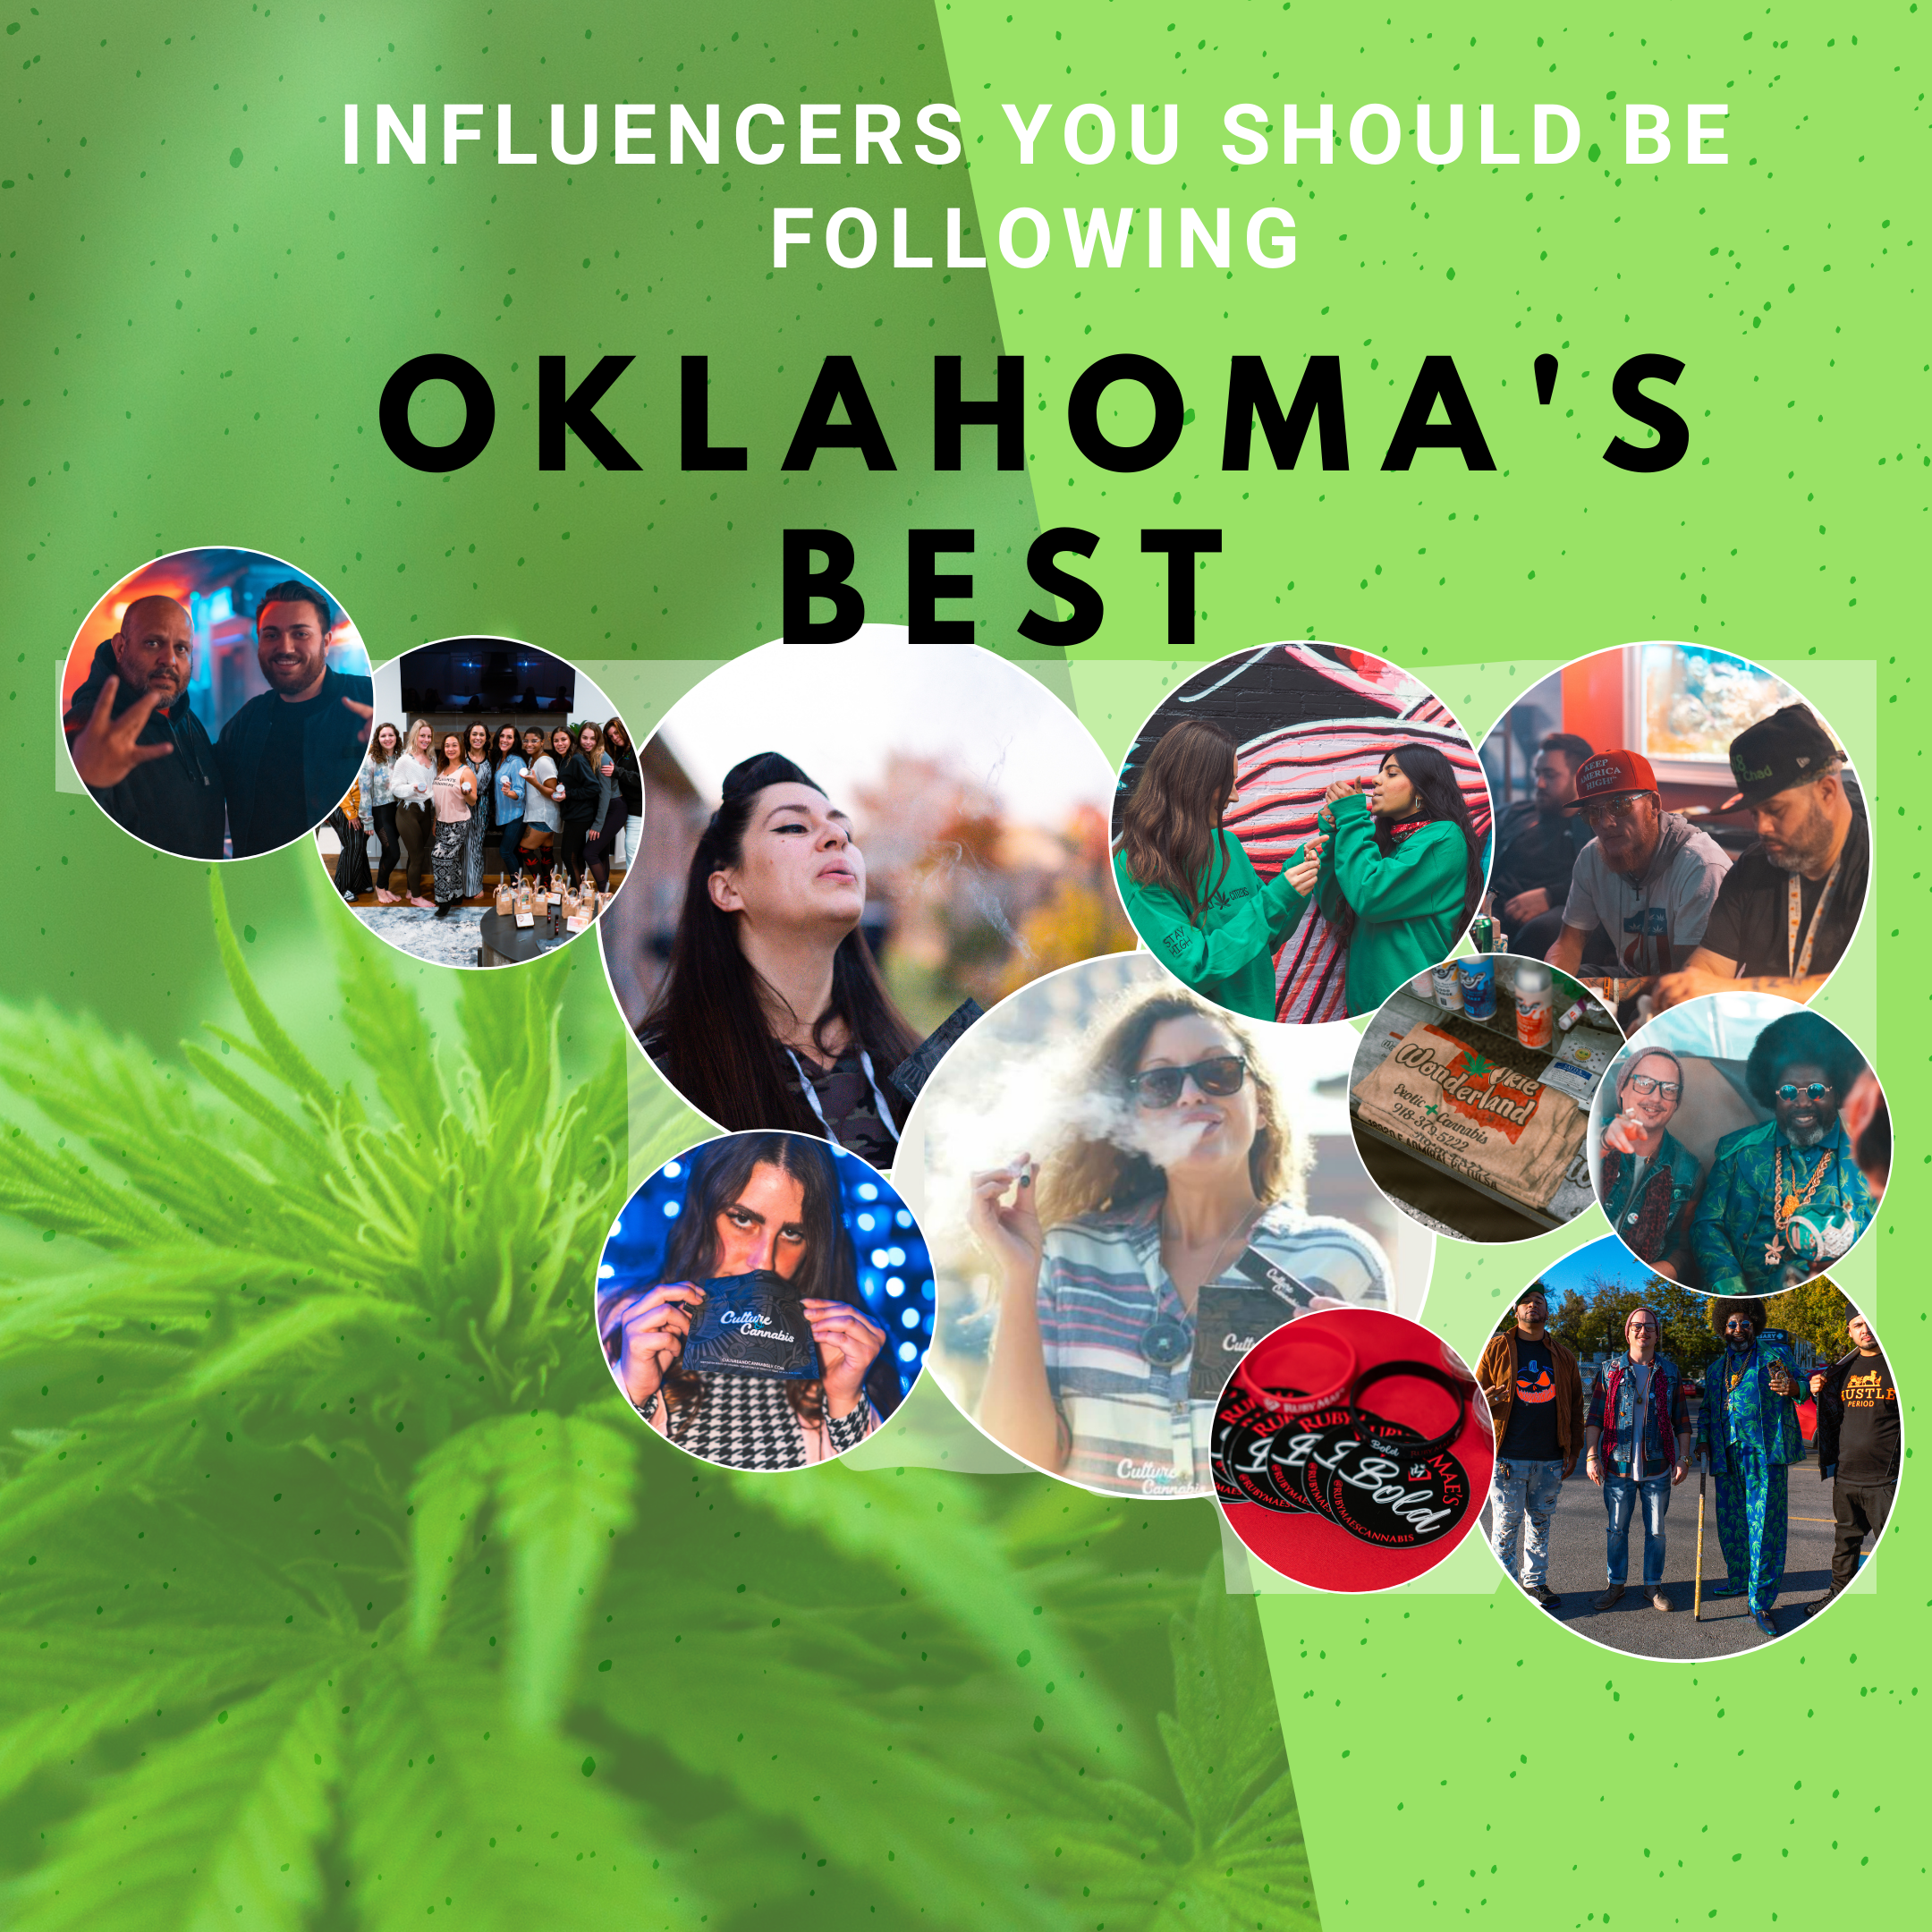 Best of Oklahoma: Cannabis Influencers You Should Be Following